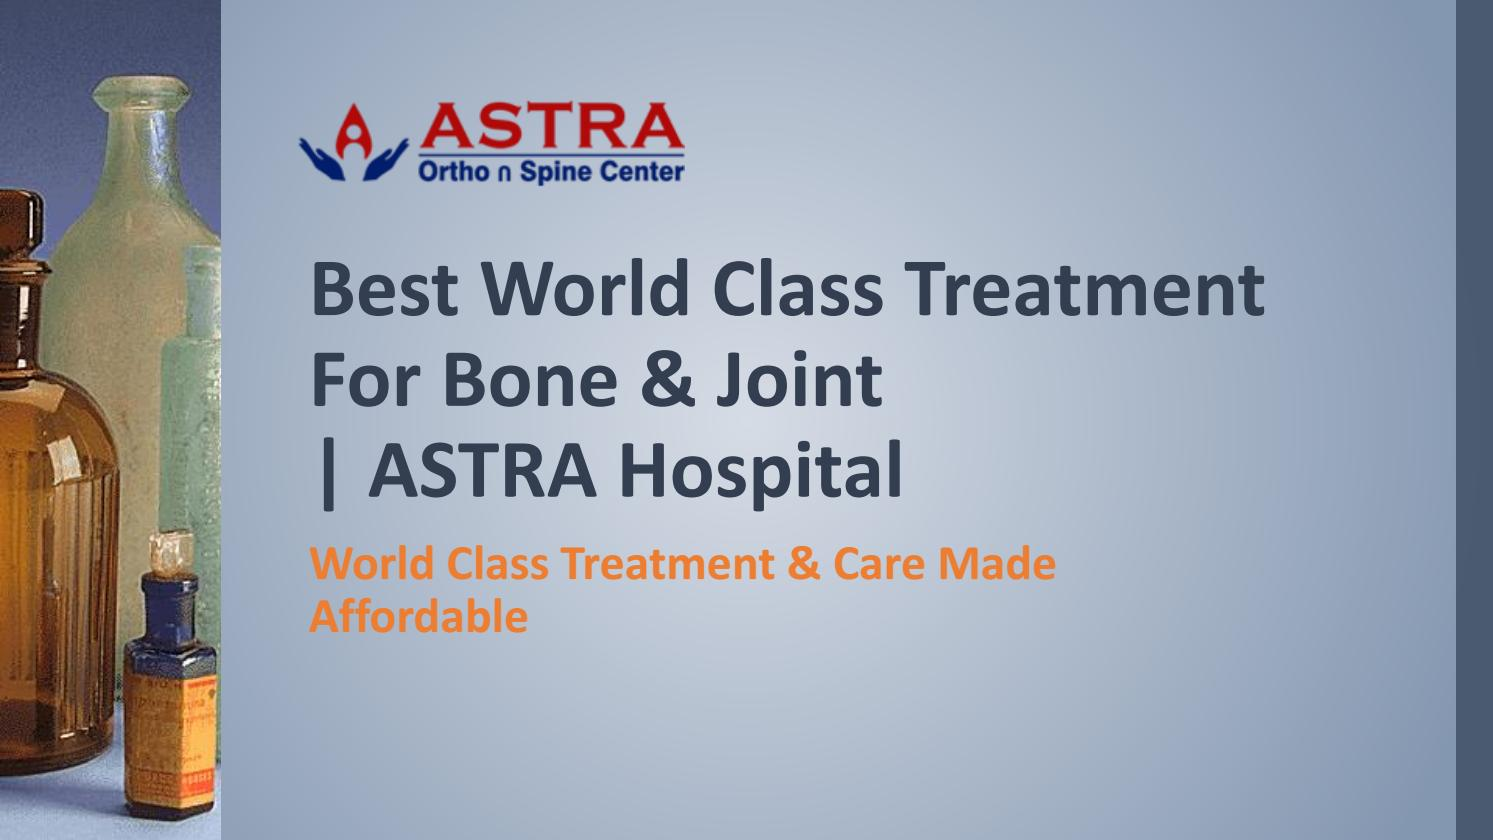 Best world class treatment for bone & joint astra hospital